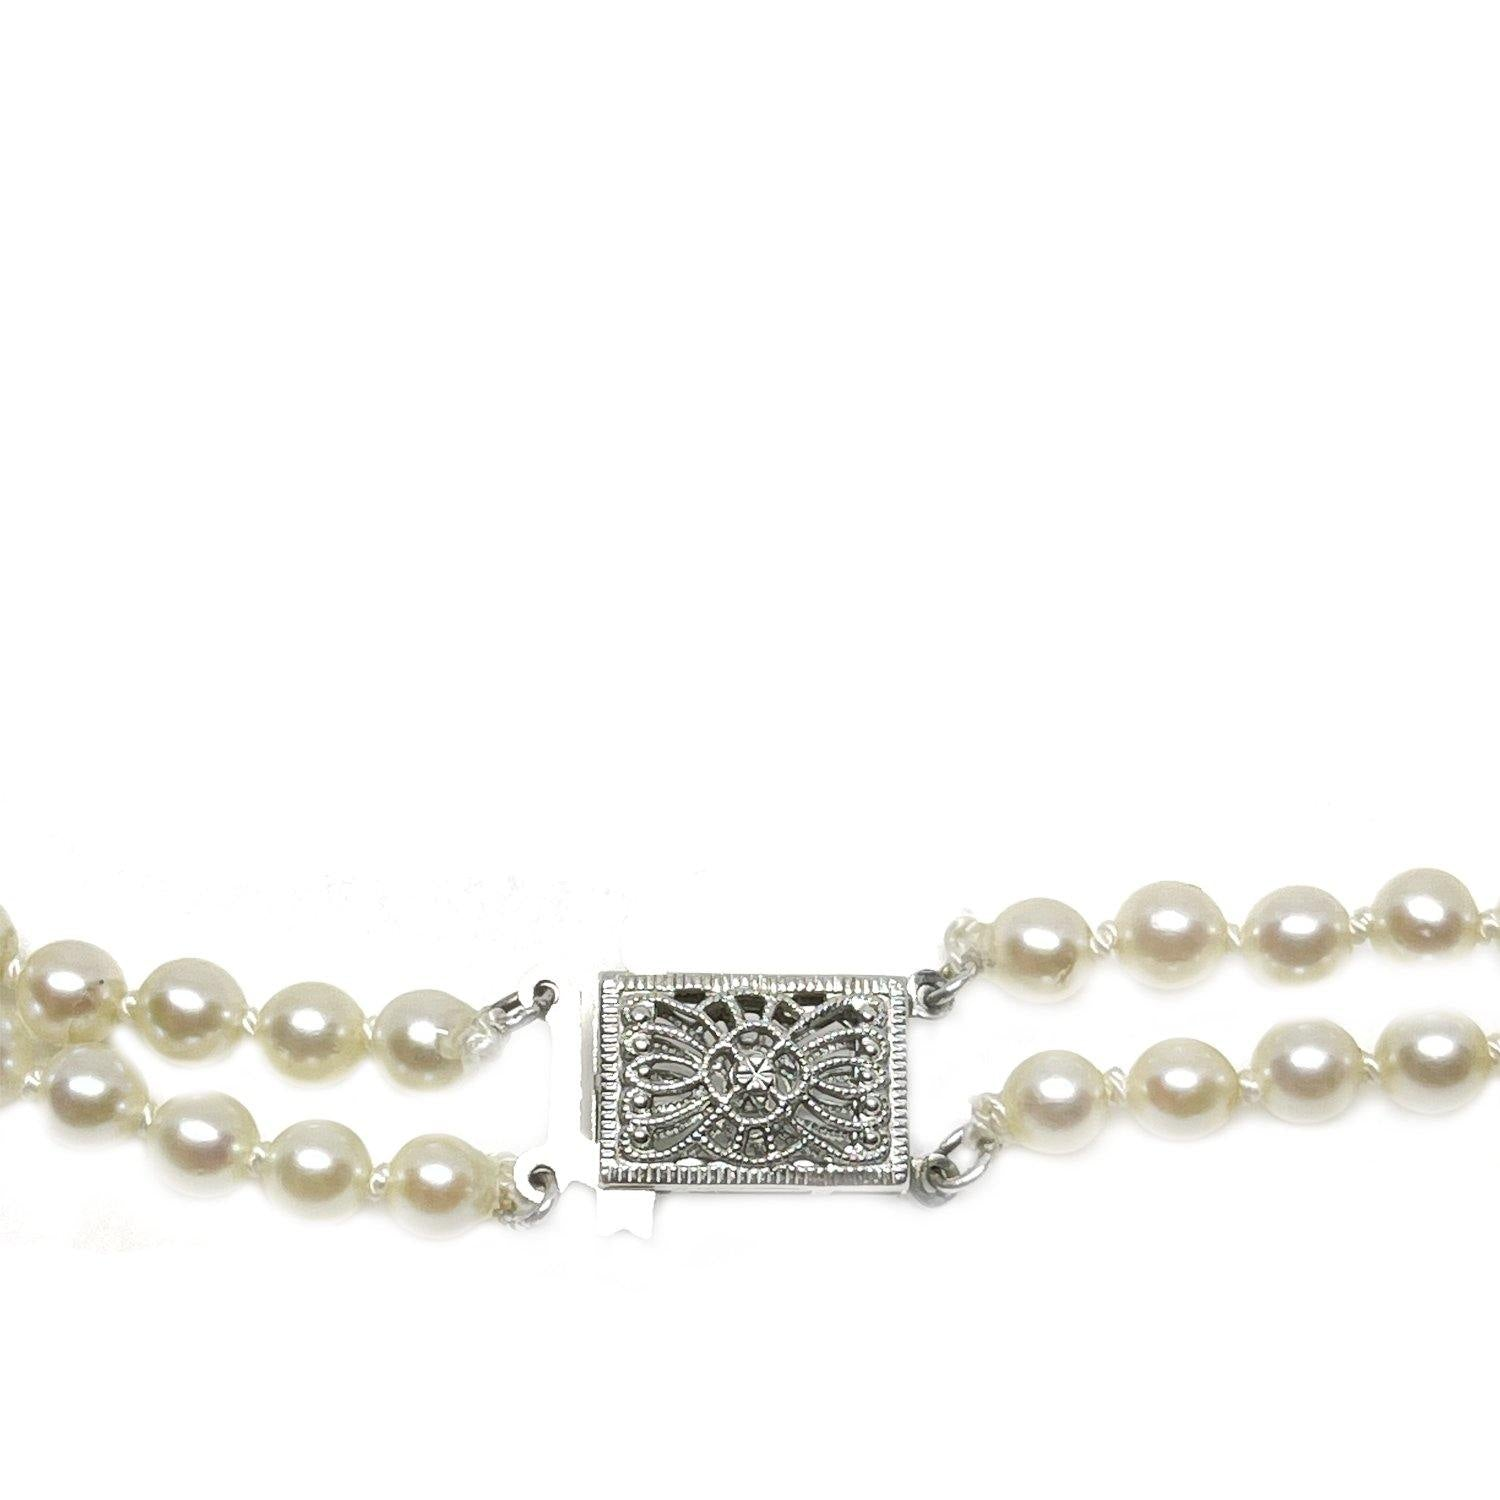 Filigree Double Strand Japanese Saltwater Cultured Akoya Pearl Necklace - 14K White Gold 17 & 18 Inch